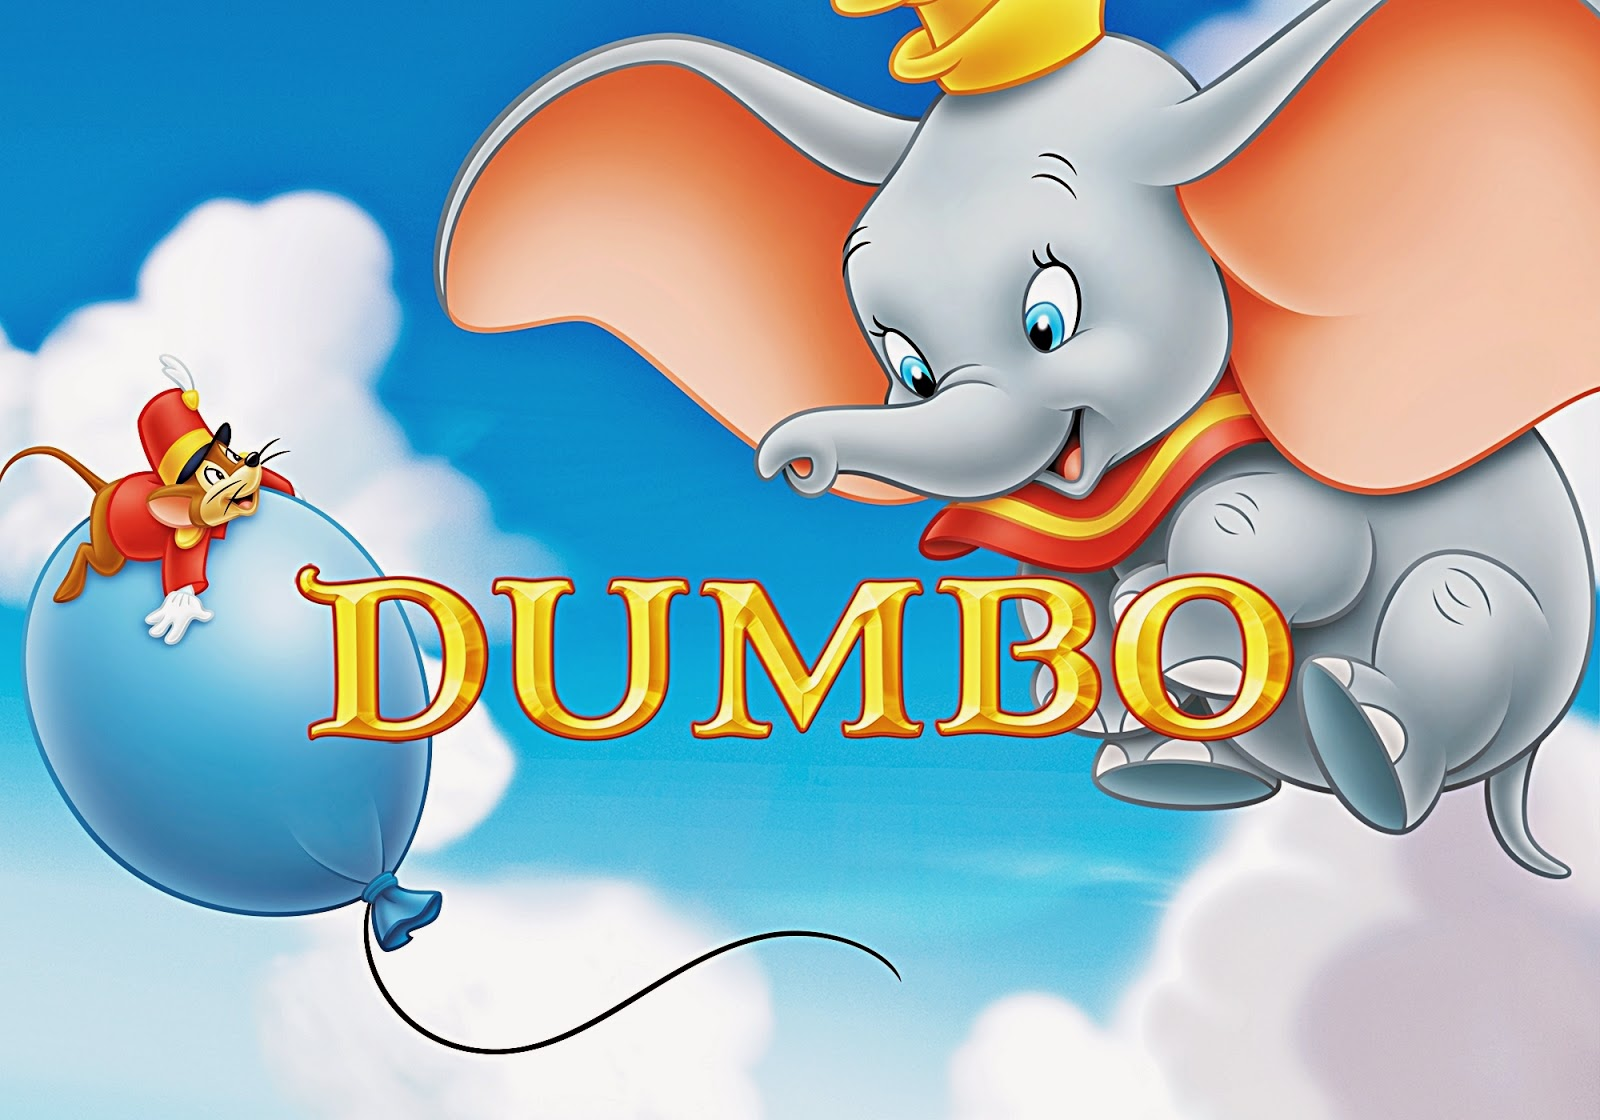 It's just a photo of Sassy Pictures of Dumbo the Elephant